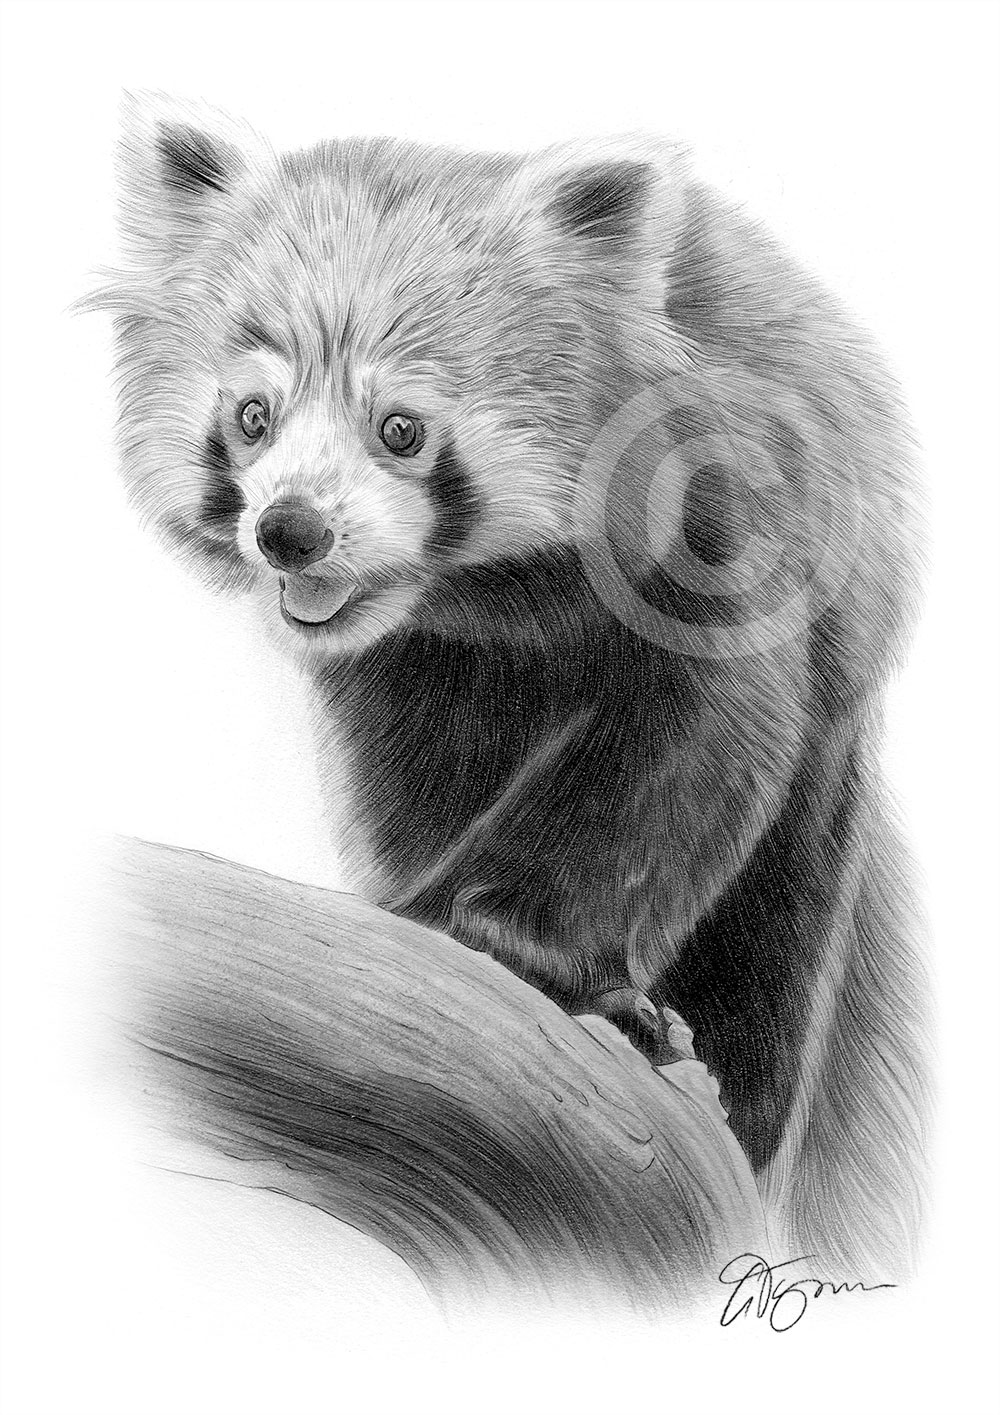 red panda drawing red panda ink illustration drawing by loren dowding drawing red panda